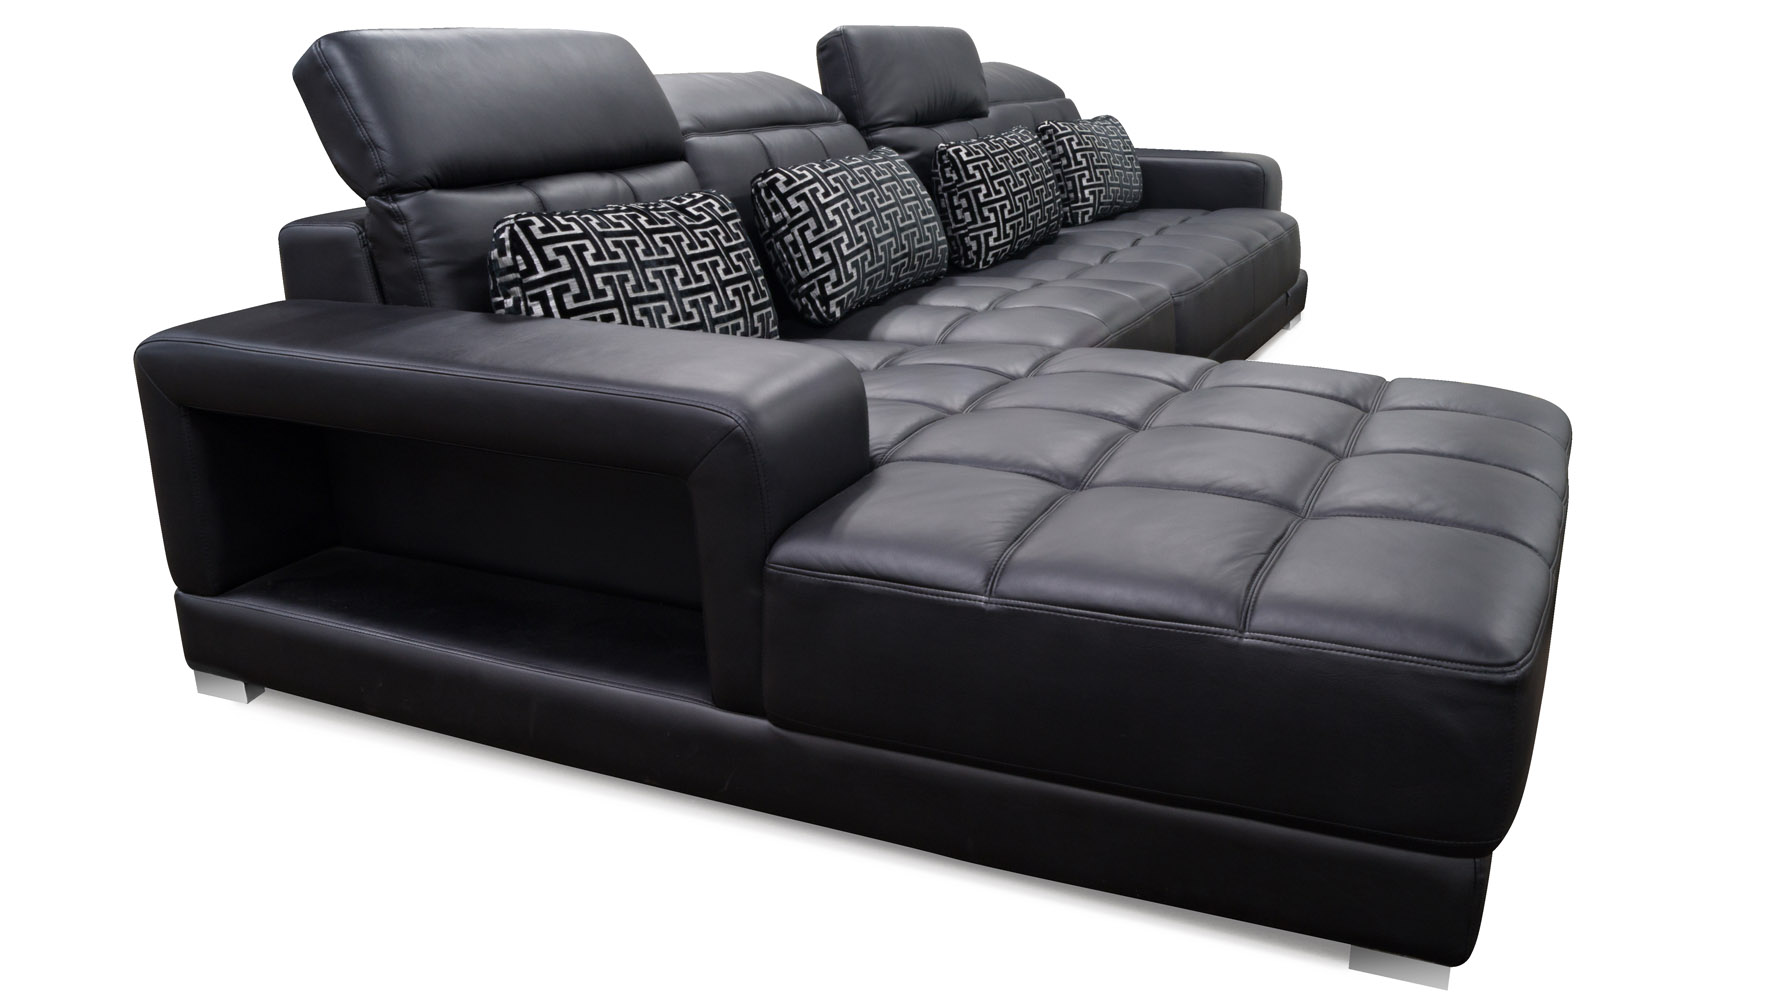 Conrad black leather sectional zuri furniture for Black leather sectional sofa with chaise